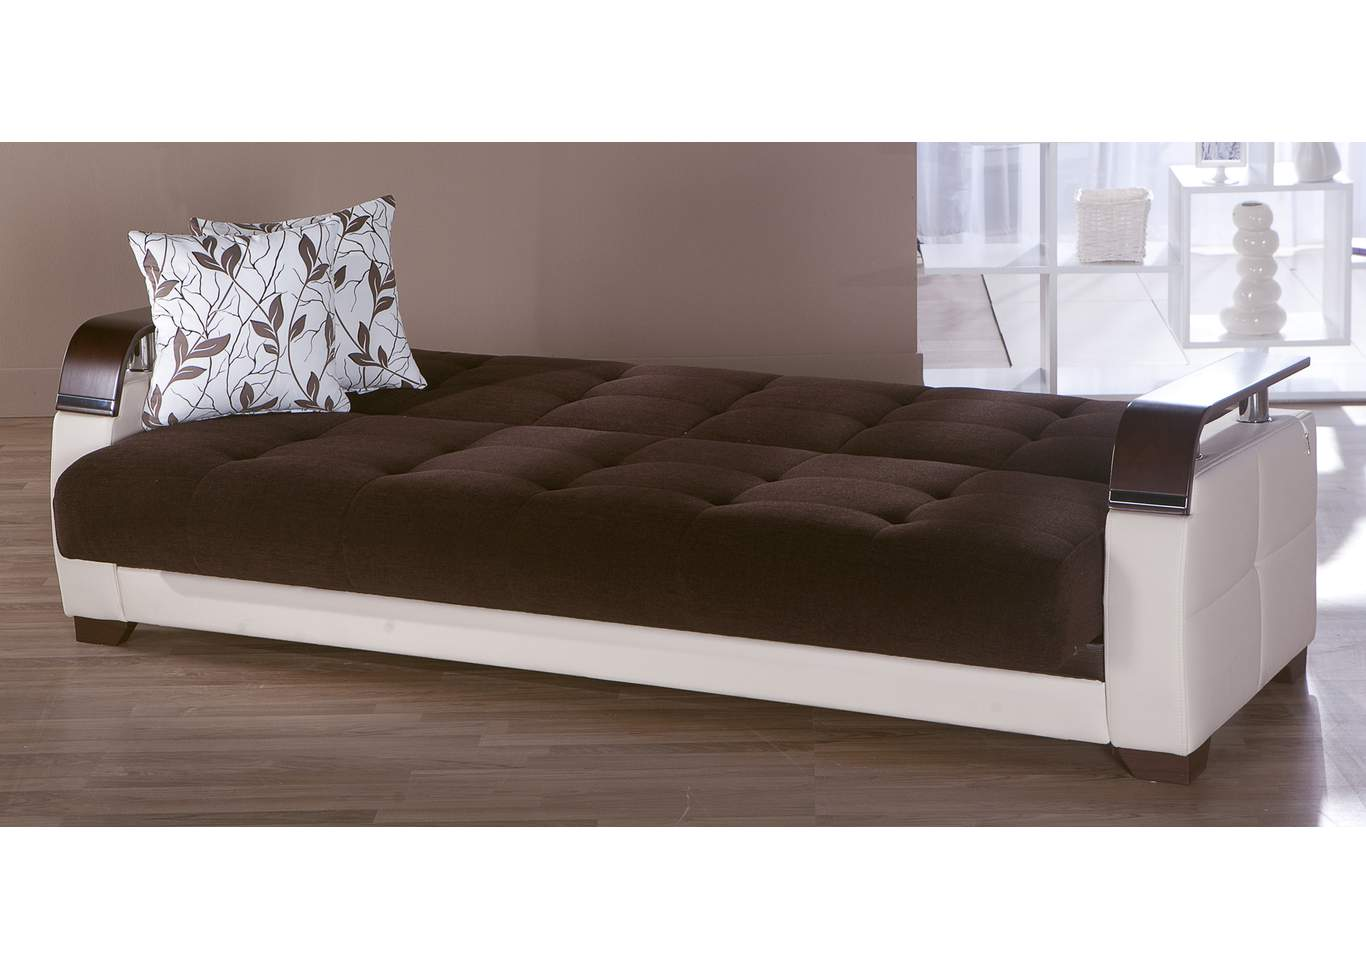 Natural Colins Brown 3 Seat Sleeper Sofa,Hudson Furniture & Bedding